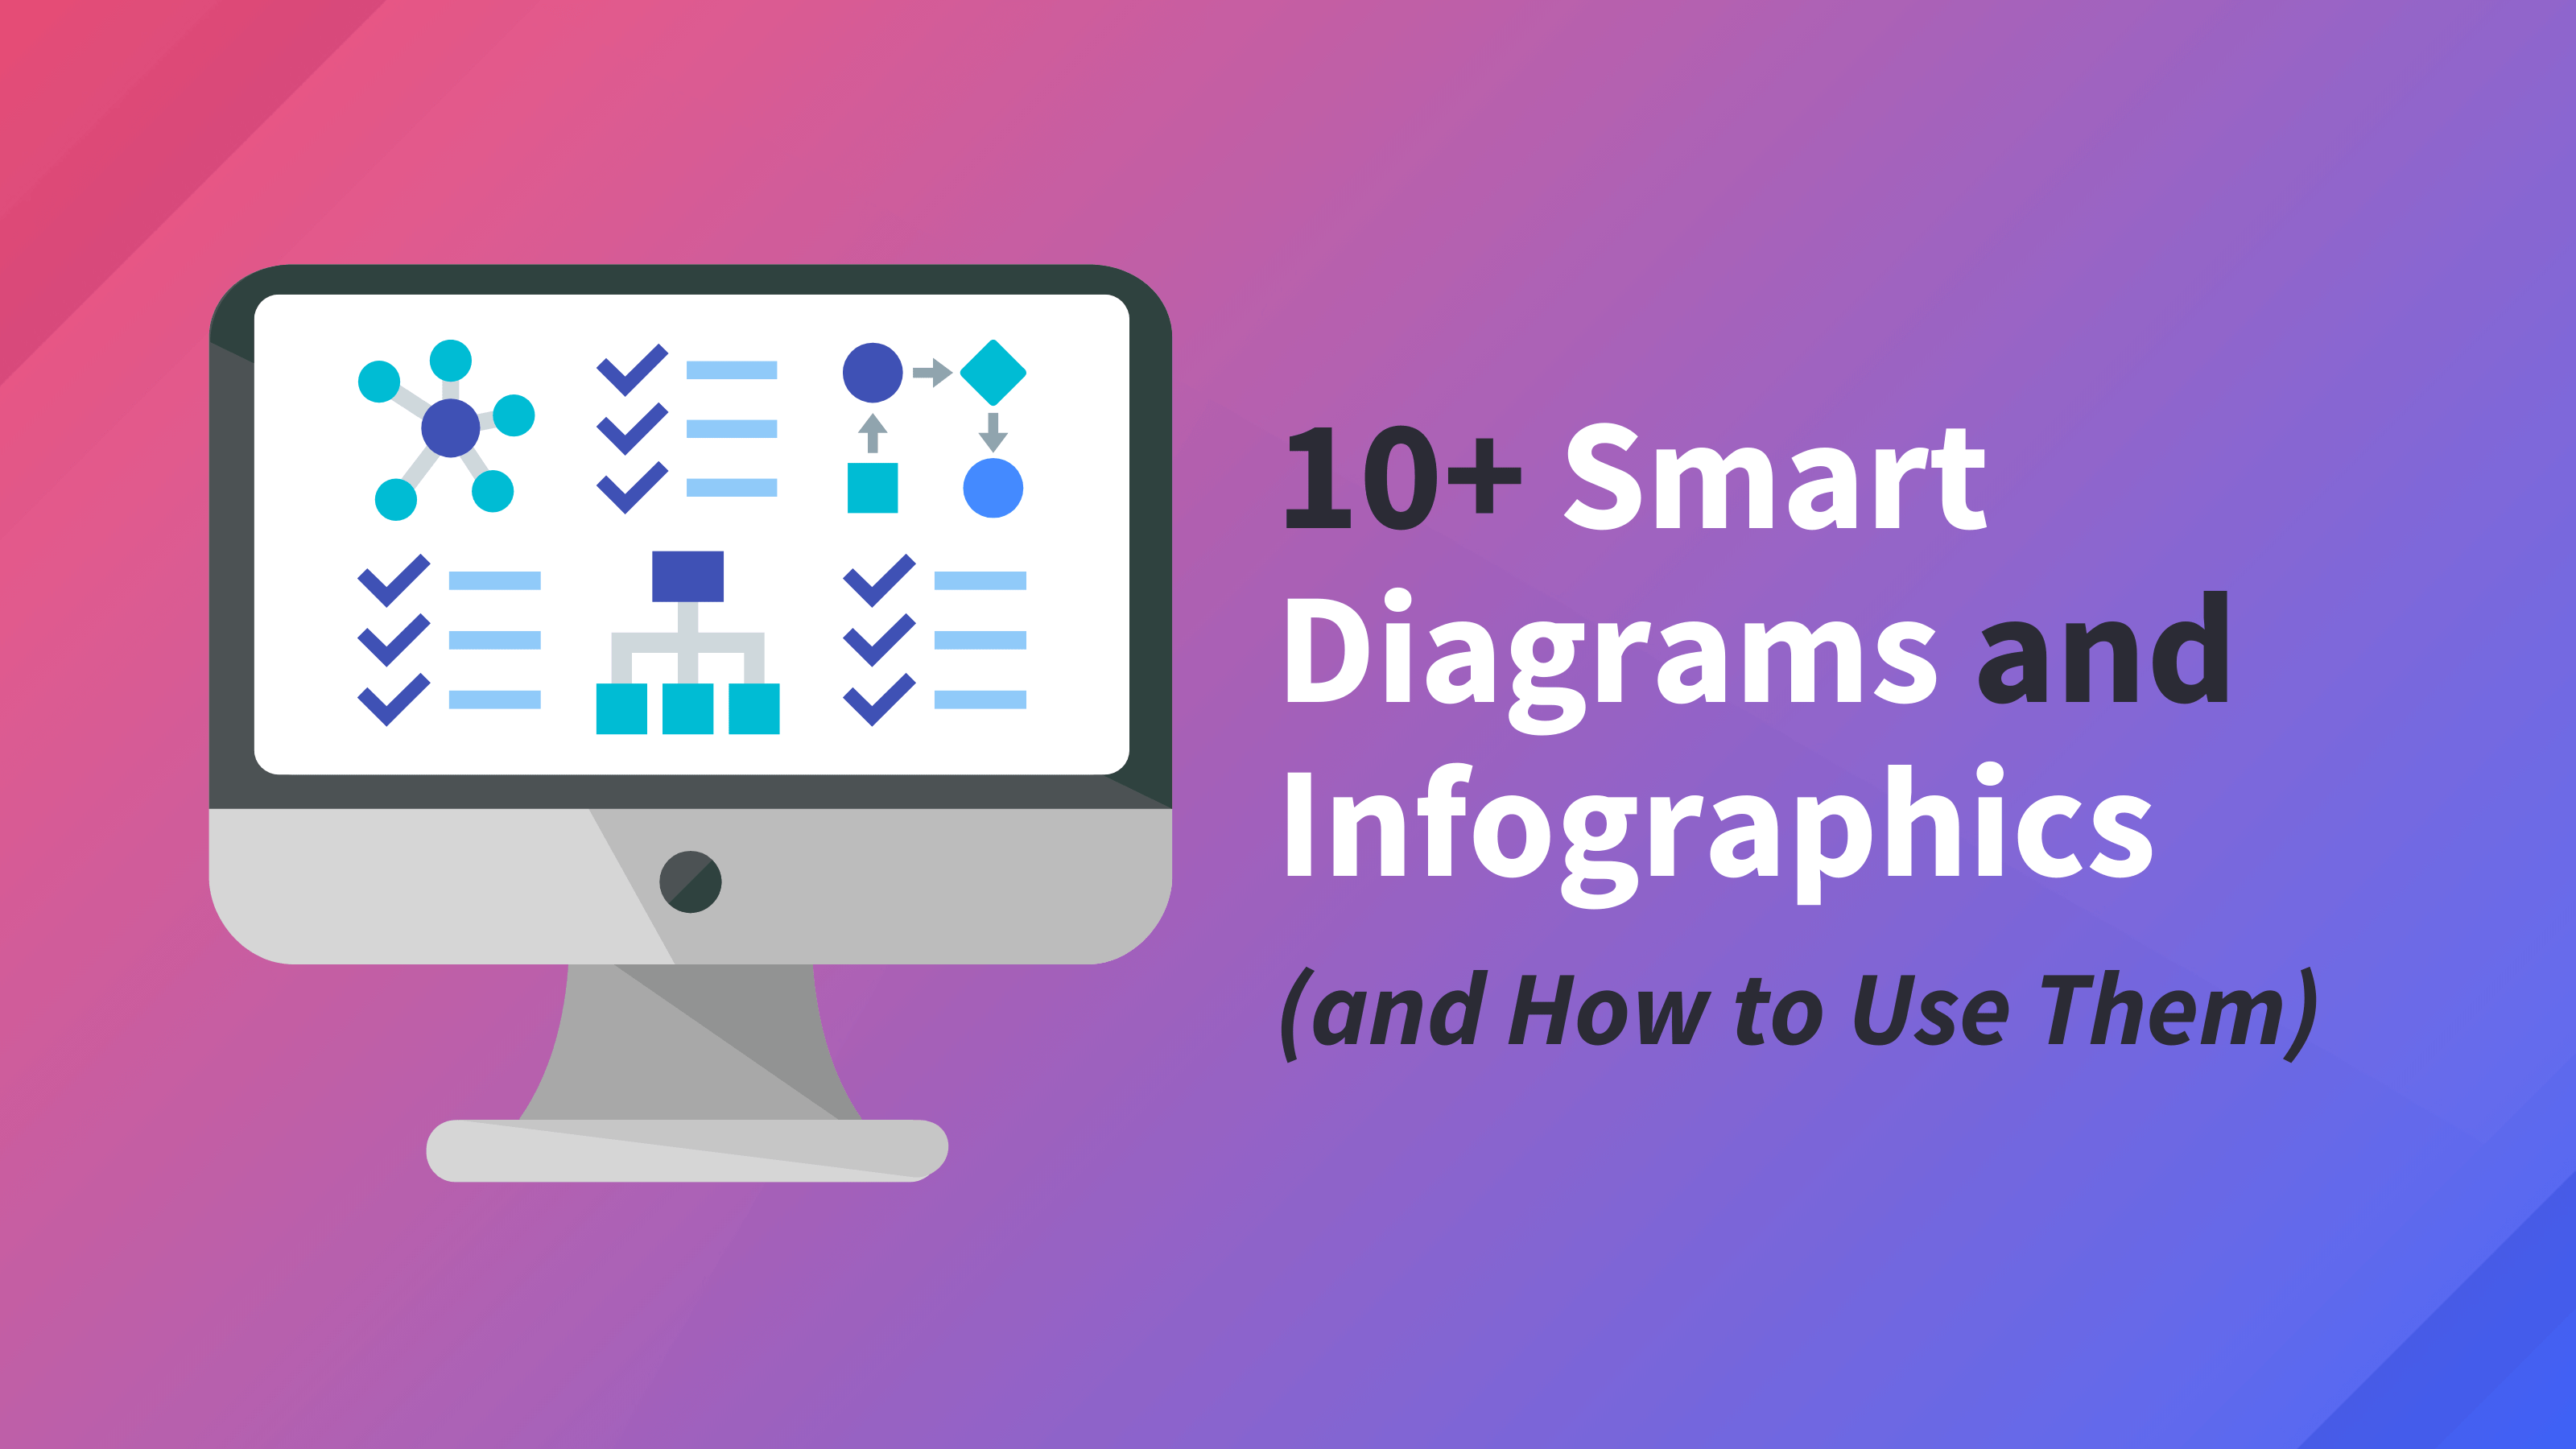 10+ Smart Diagrams and Infographics (and How to Use Them) Blog Header